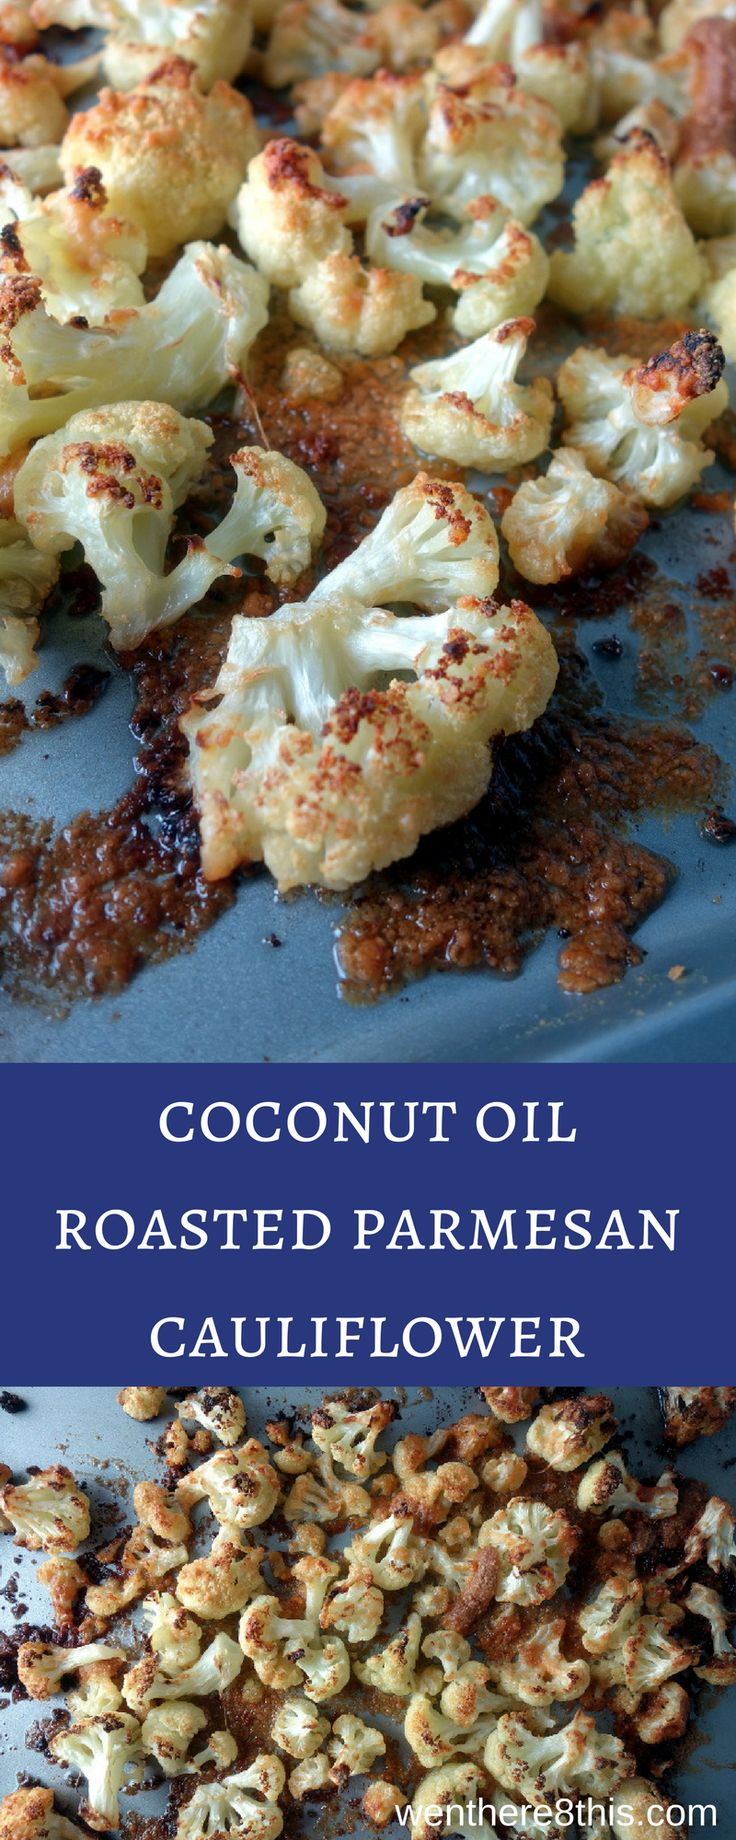 This coconut oil roasted parmesan cauliflower is easy to make and delicious, roasted with coconut and parmesan cheese for perfectly crisp caramelized edges.    parmesan roasted cauliflower   healthy roasted cauliflower   easy roasted cauliflower   coconut oil recipes   keto cauliflower bites   low carb cauliflower bites   coconut oil roasted vegetables   paleo cauliflower via @Went Here 8 This